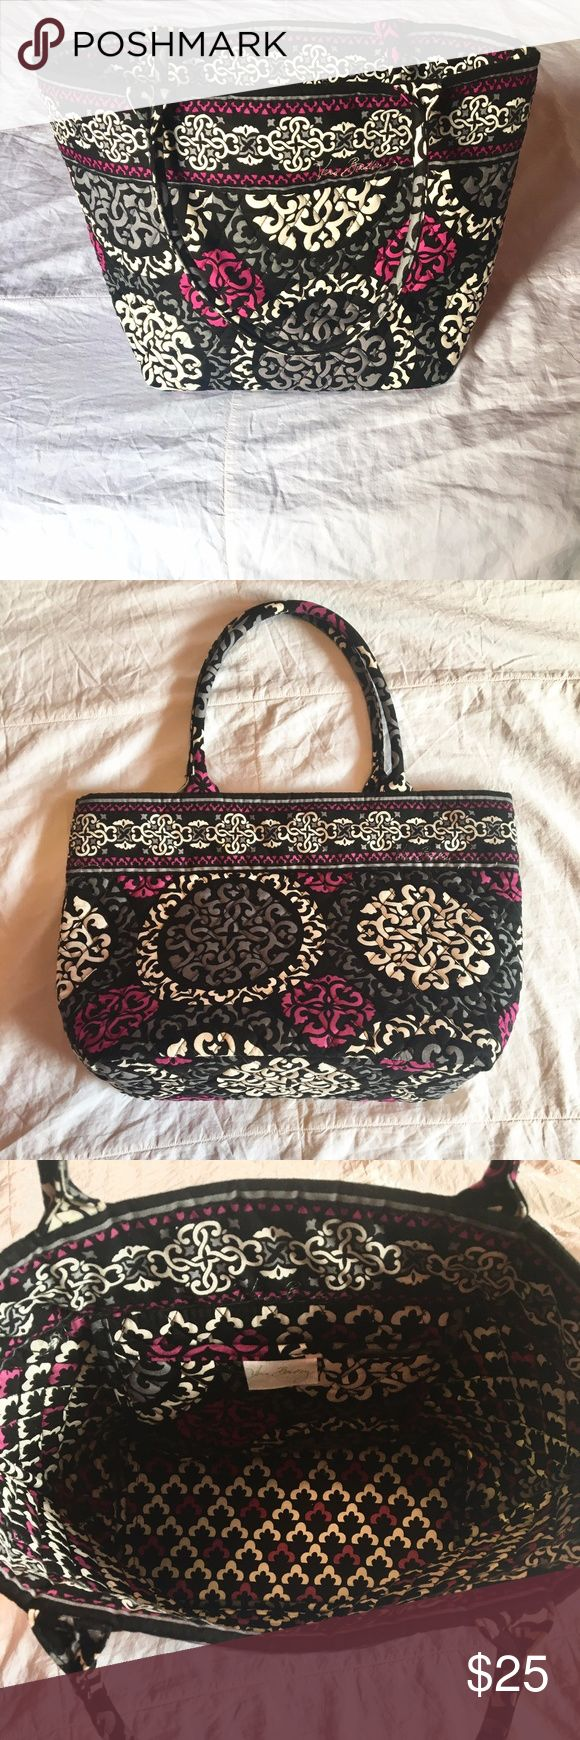 Vera Bradley Tote Used Only a Couple Times - Like New Retired Canterberry Magenta Pattern Cute and Dainty  Interior Pocket Vera Bradley Bags Totes